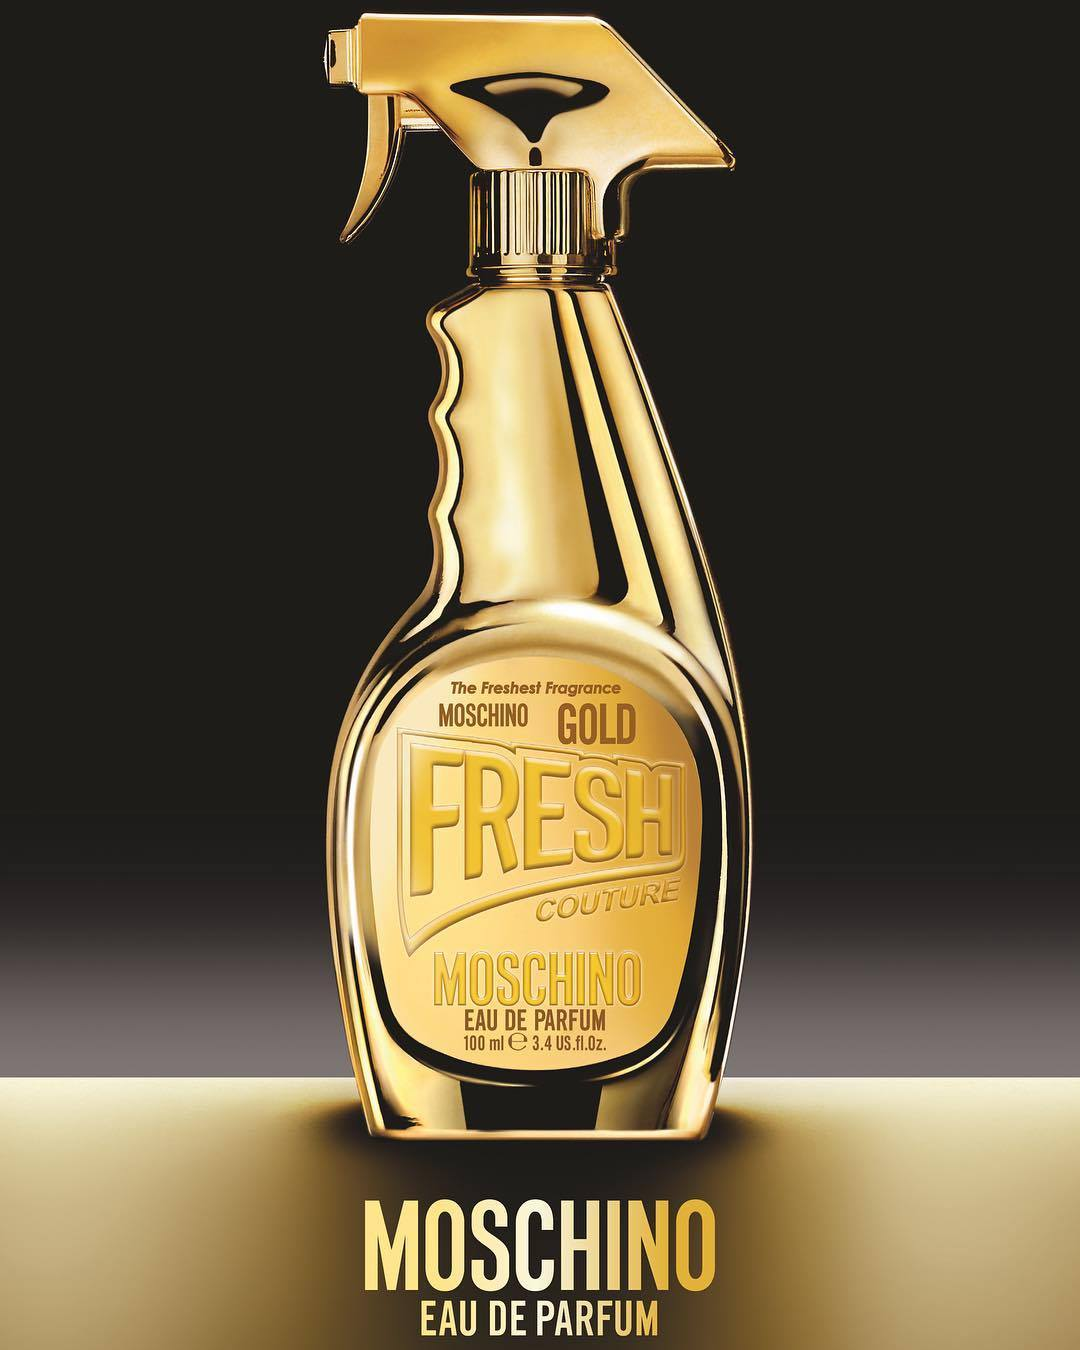 Moschino | 'Gold Fresh' Fragrance 2017 Ad Campaign